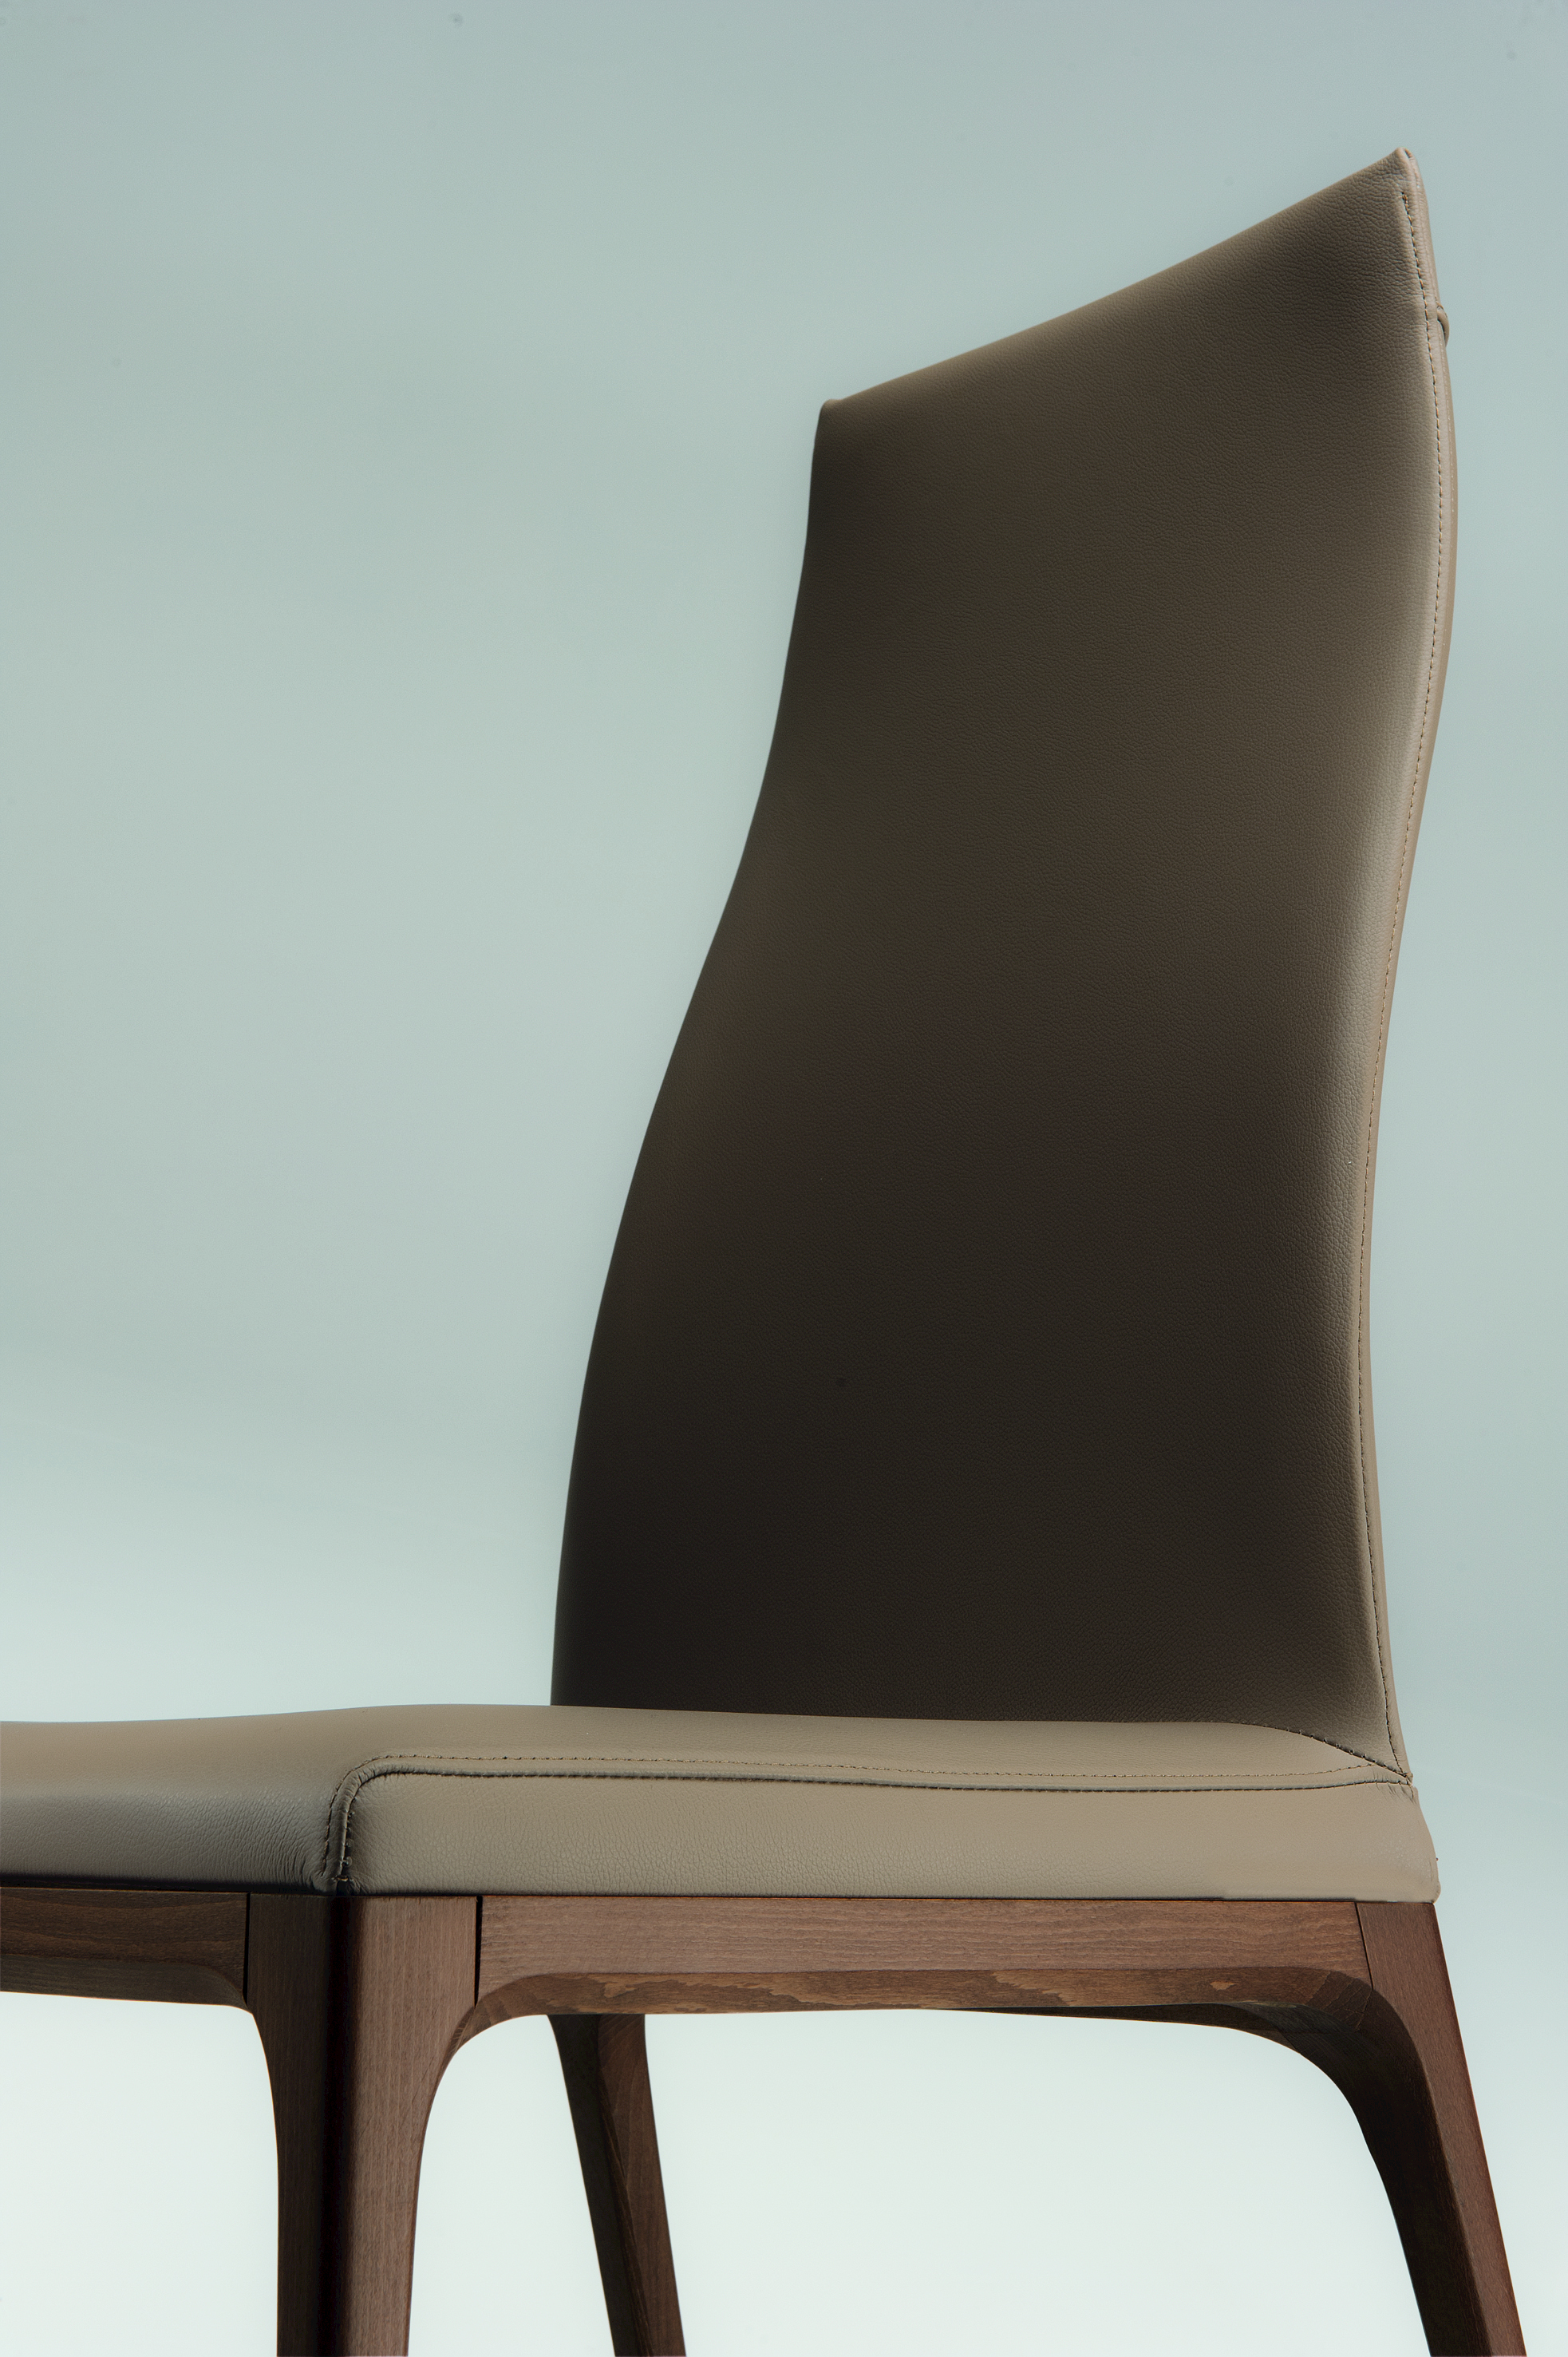 arcadia chaise avec dossier haut by cattelan italia design paolo cattelan. Black Bedroom Furniture Sets. Home Design Ideas